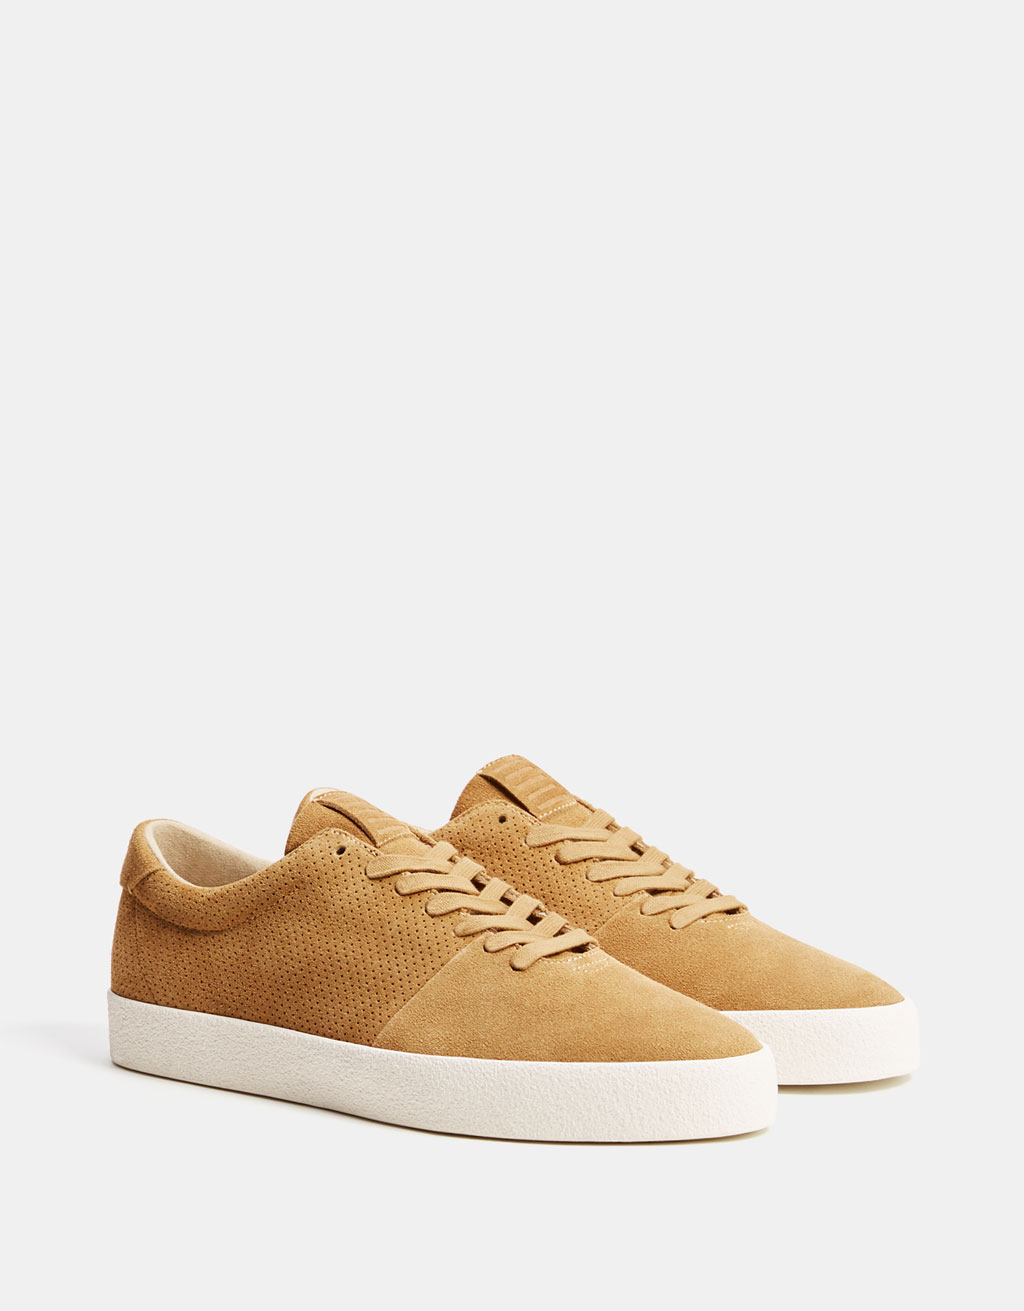 Men's leather sneakers with broguing